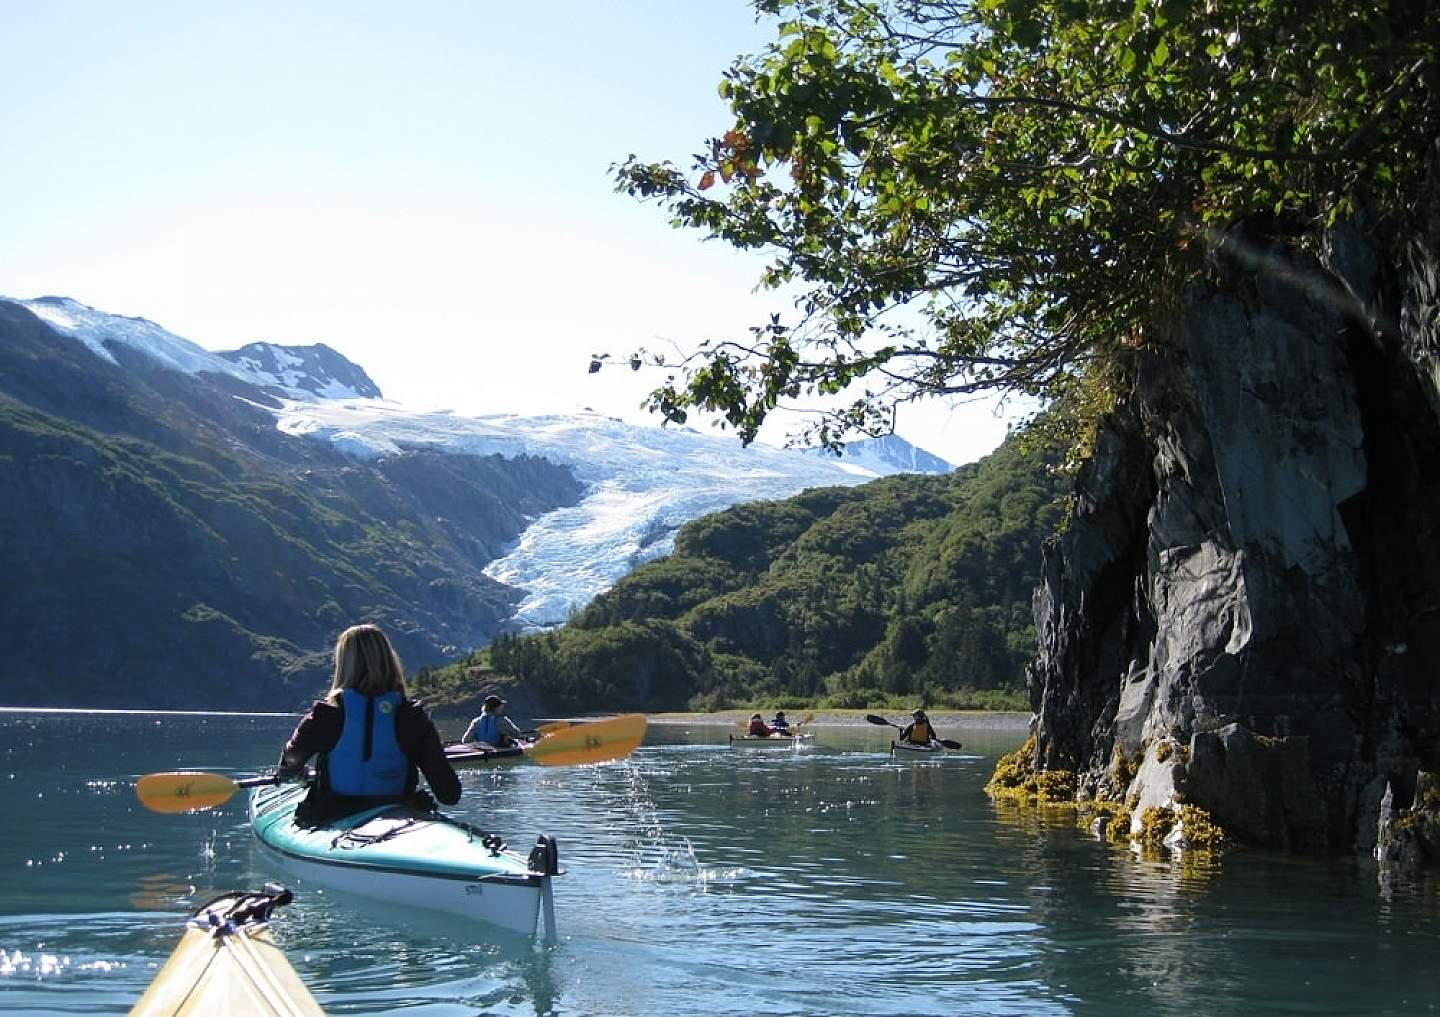 People kayaking in Prince William Sound near a glacier